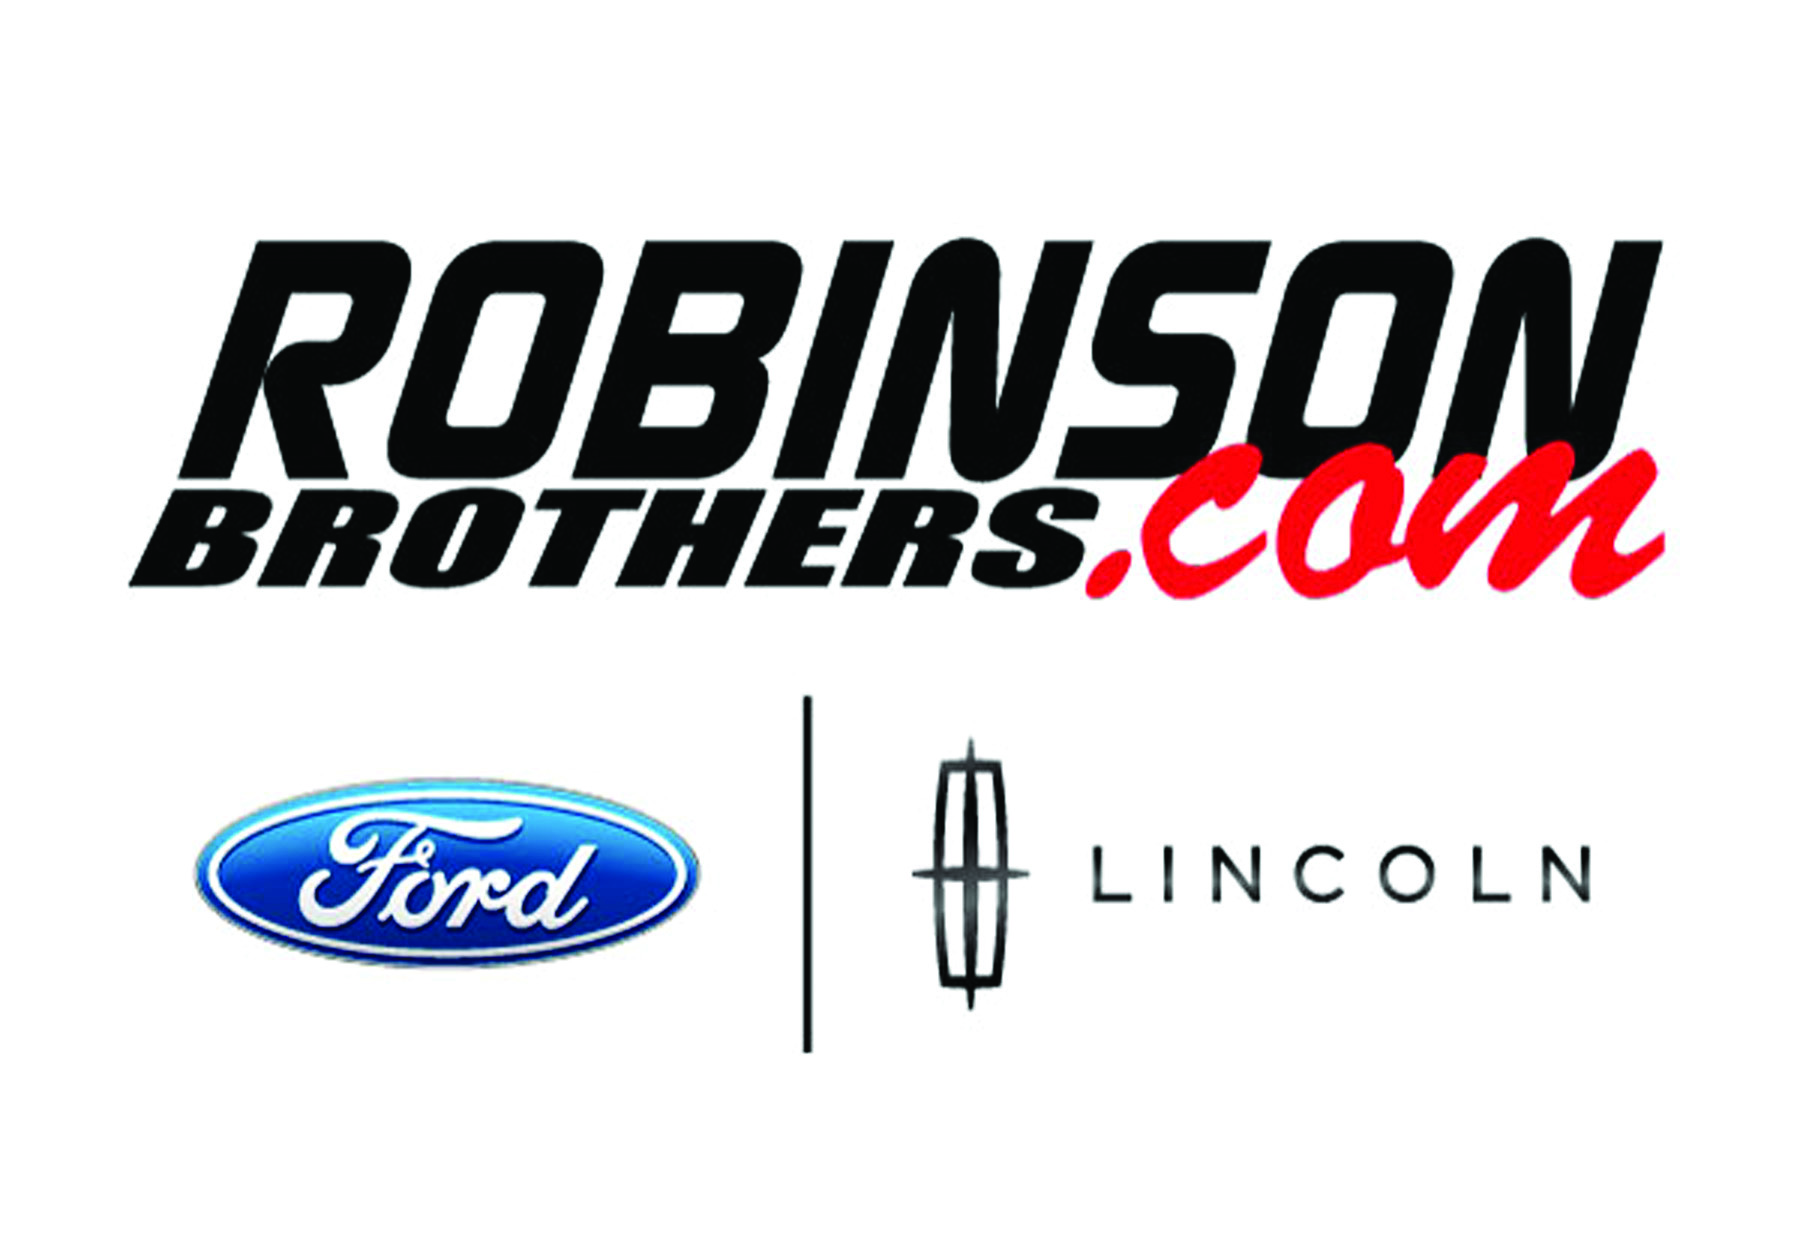 93 Robinson Brothers